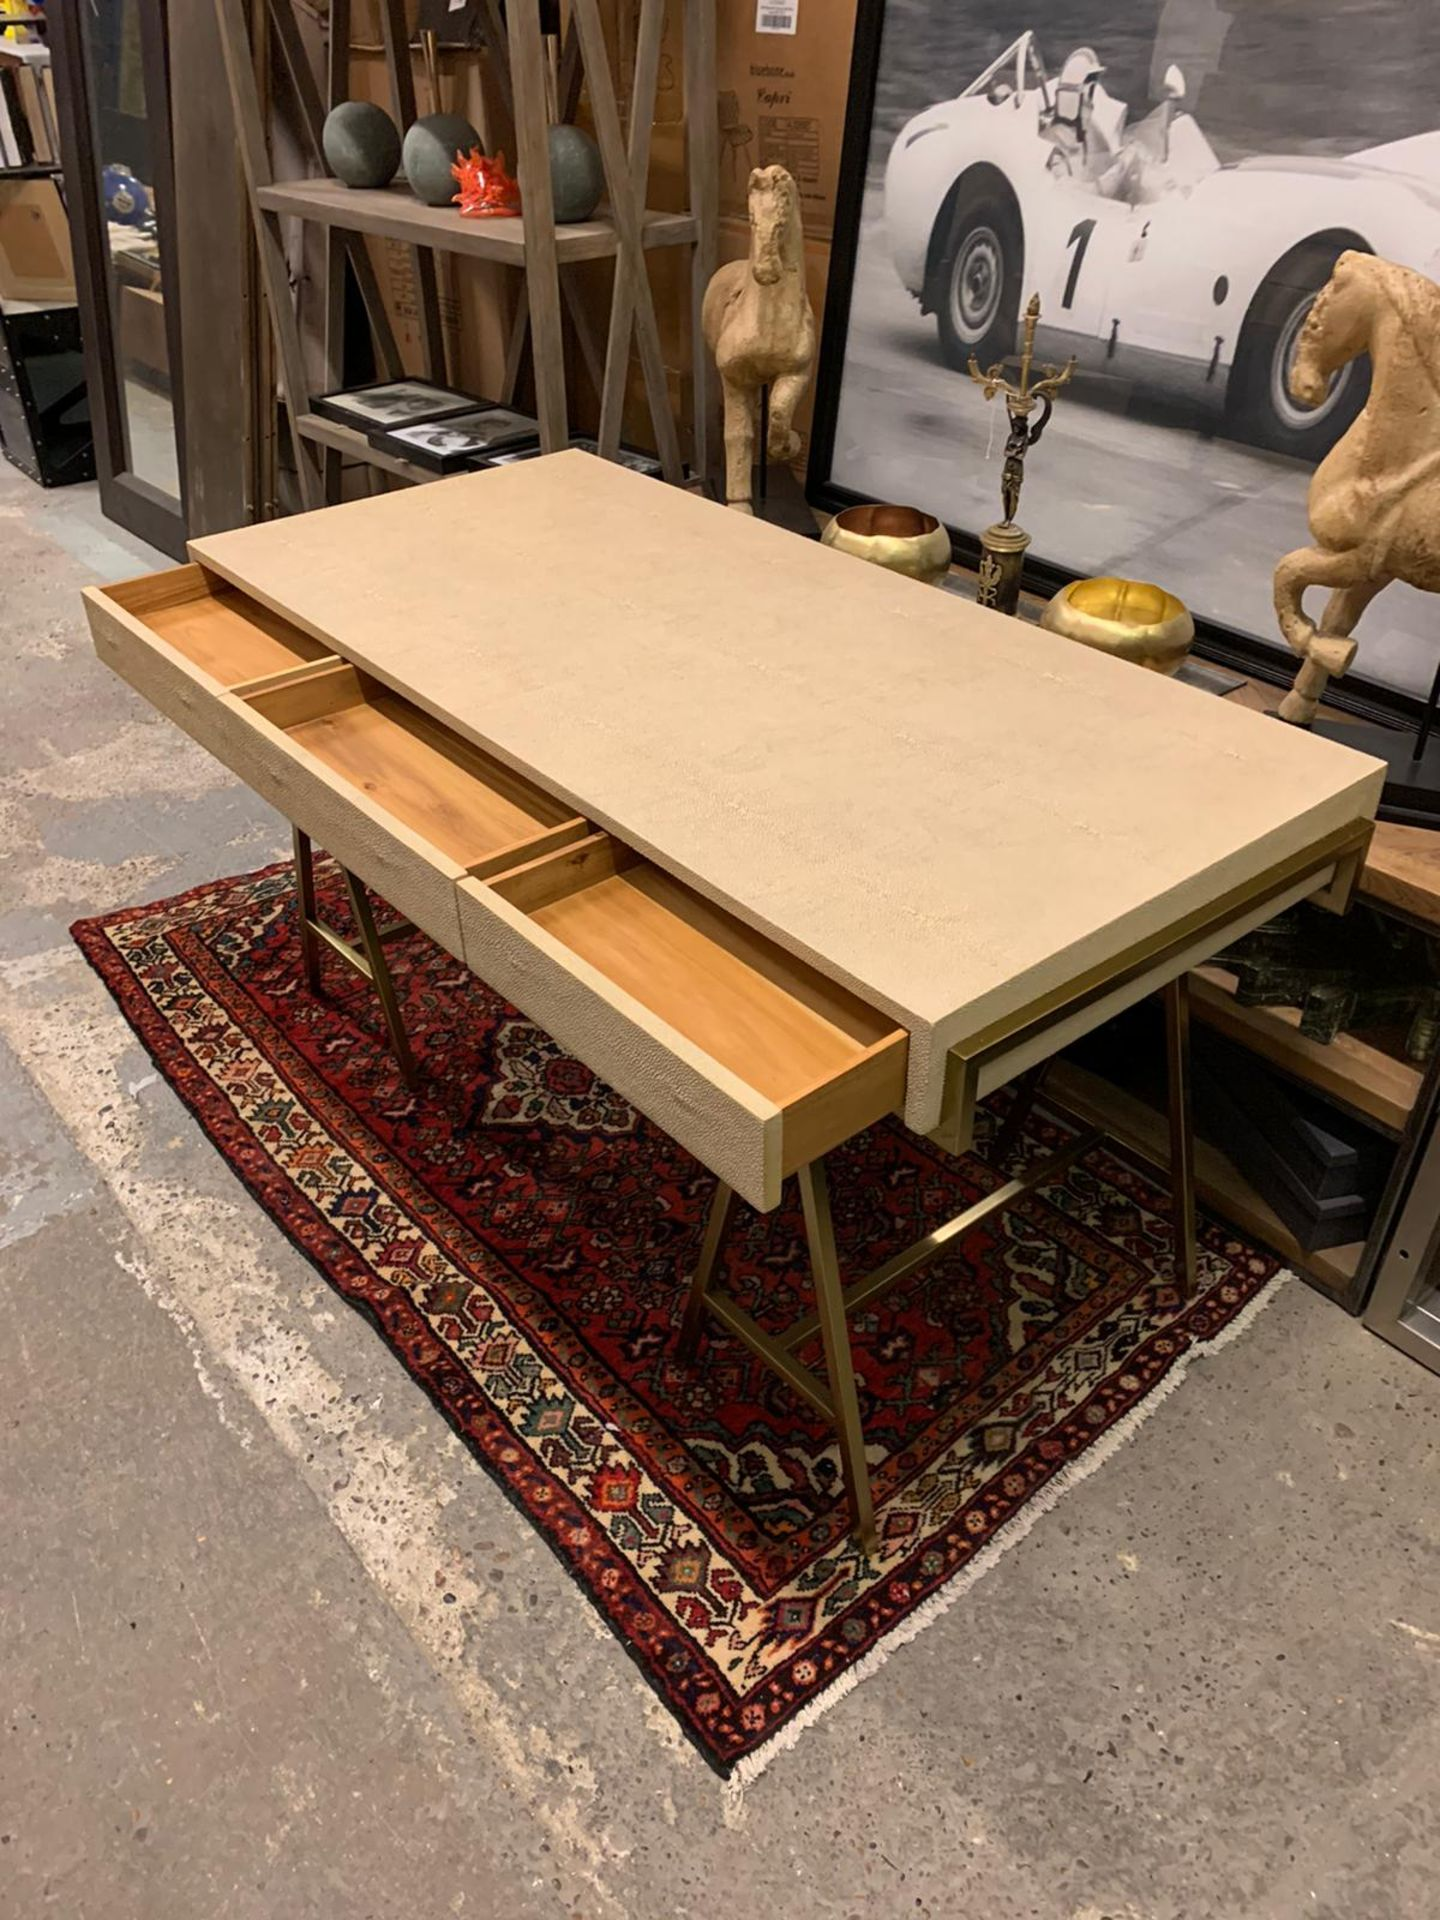 Lot 711 - Delilah Desk